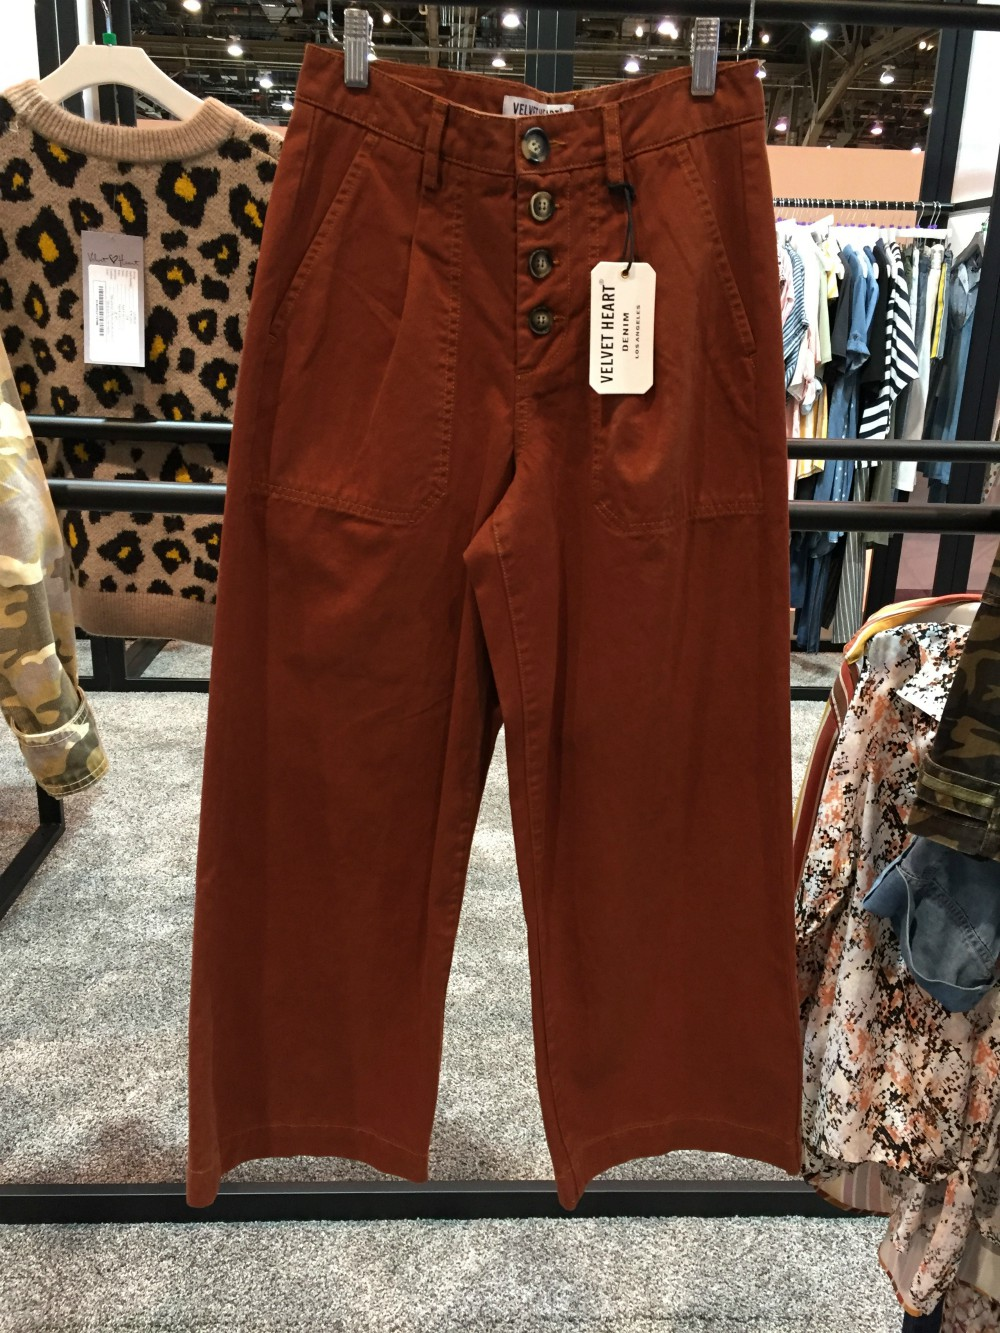 Skinny jeans are out and billowy, wide-leg trousers are in. At MAGIC, cropped and full-length versions of the silhouette ranged in color from neutrals to brights. Pleats or darts added to the look's '70s retro vibe.